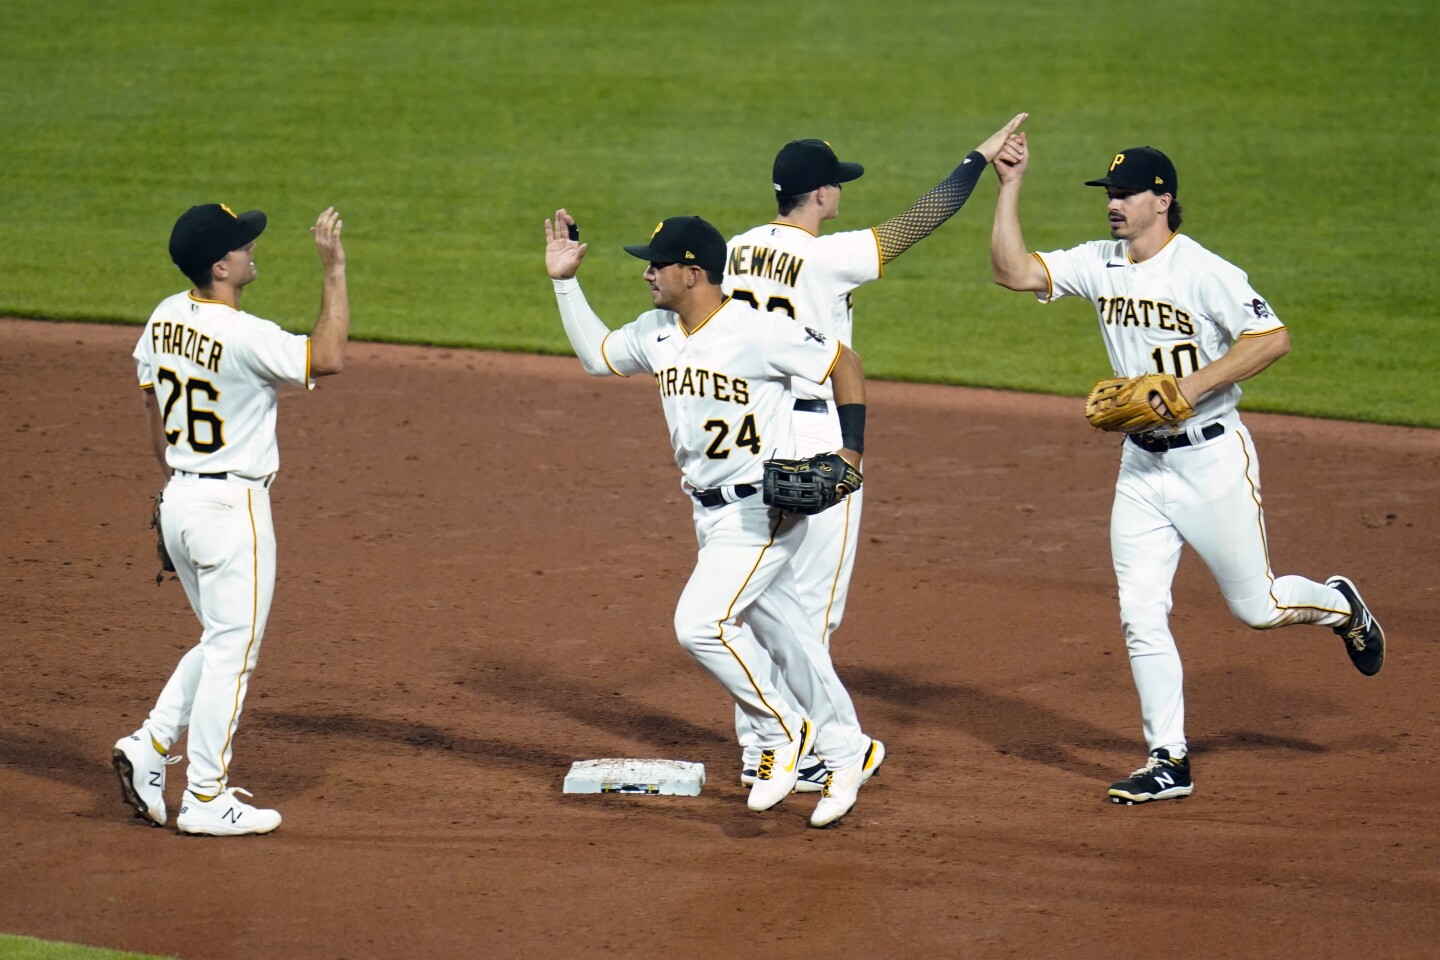 Pittsburgh Pirates' Adam Frazier (26), Phillip Evans (24), Adam Frazier (26), and Bryan Reynolds (10) celebrates after defeating the Kansas City Royals in a baseball game, Tuesday, April 27, 2021, in Pittsburgh. The Pirates won 2-1.(AP Photo/Keith Srakocic)